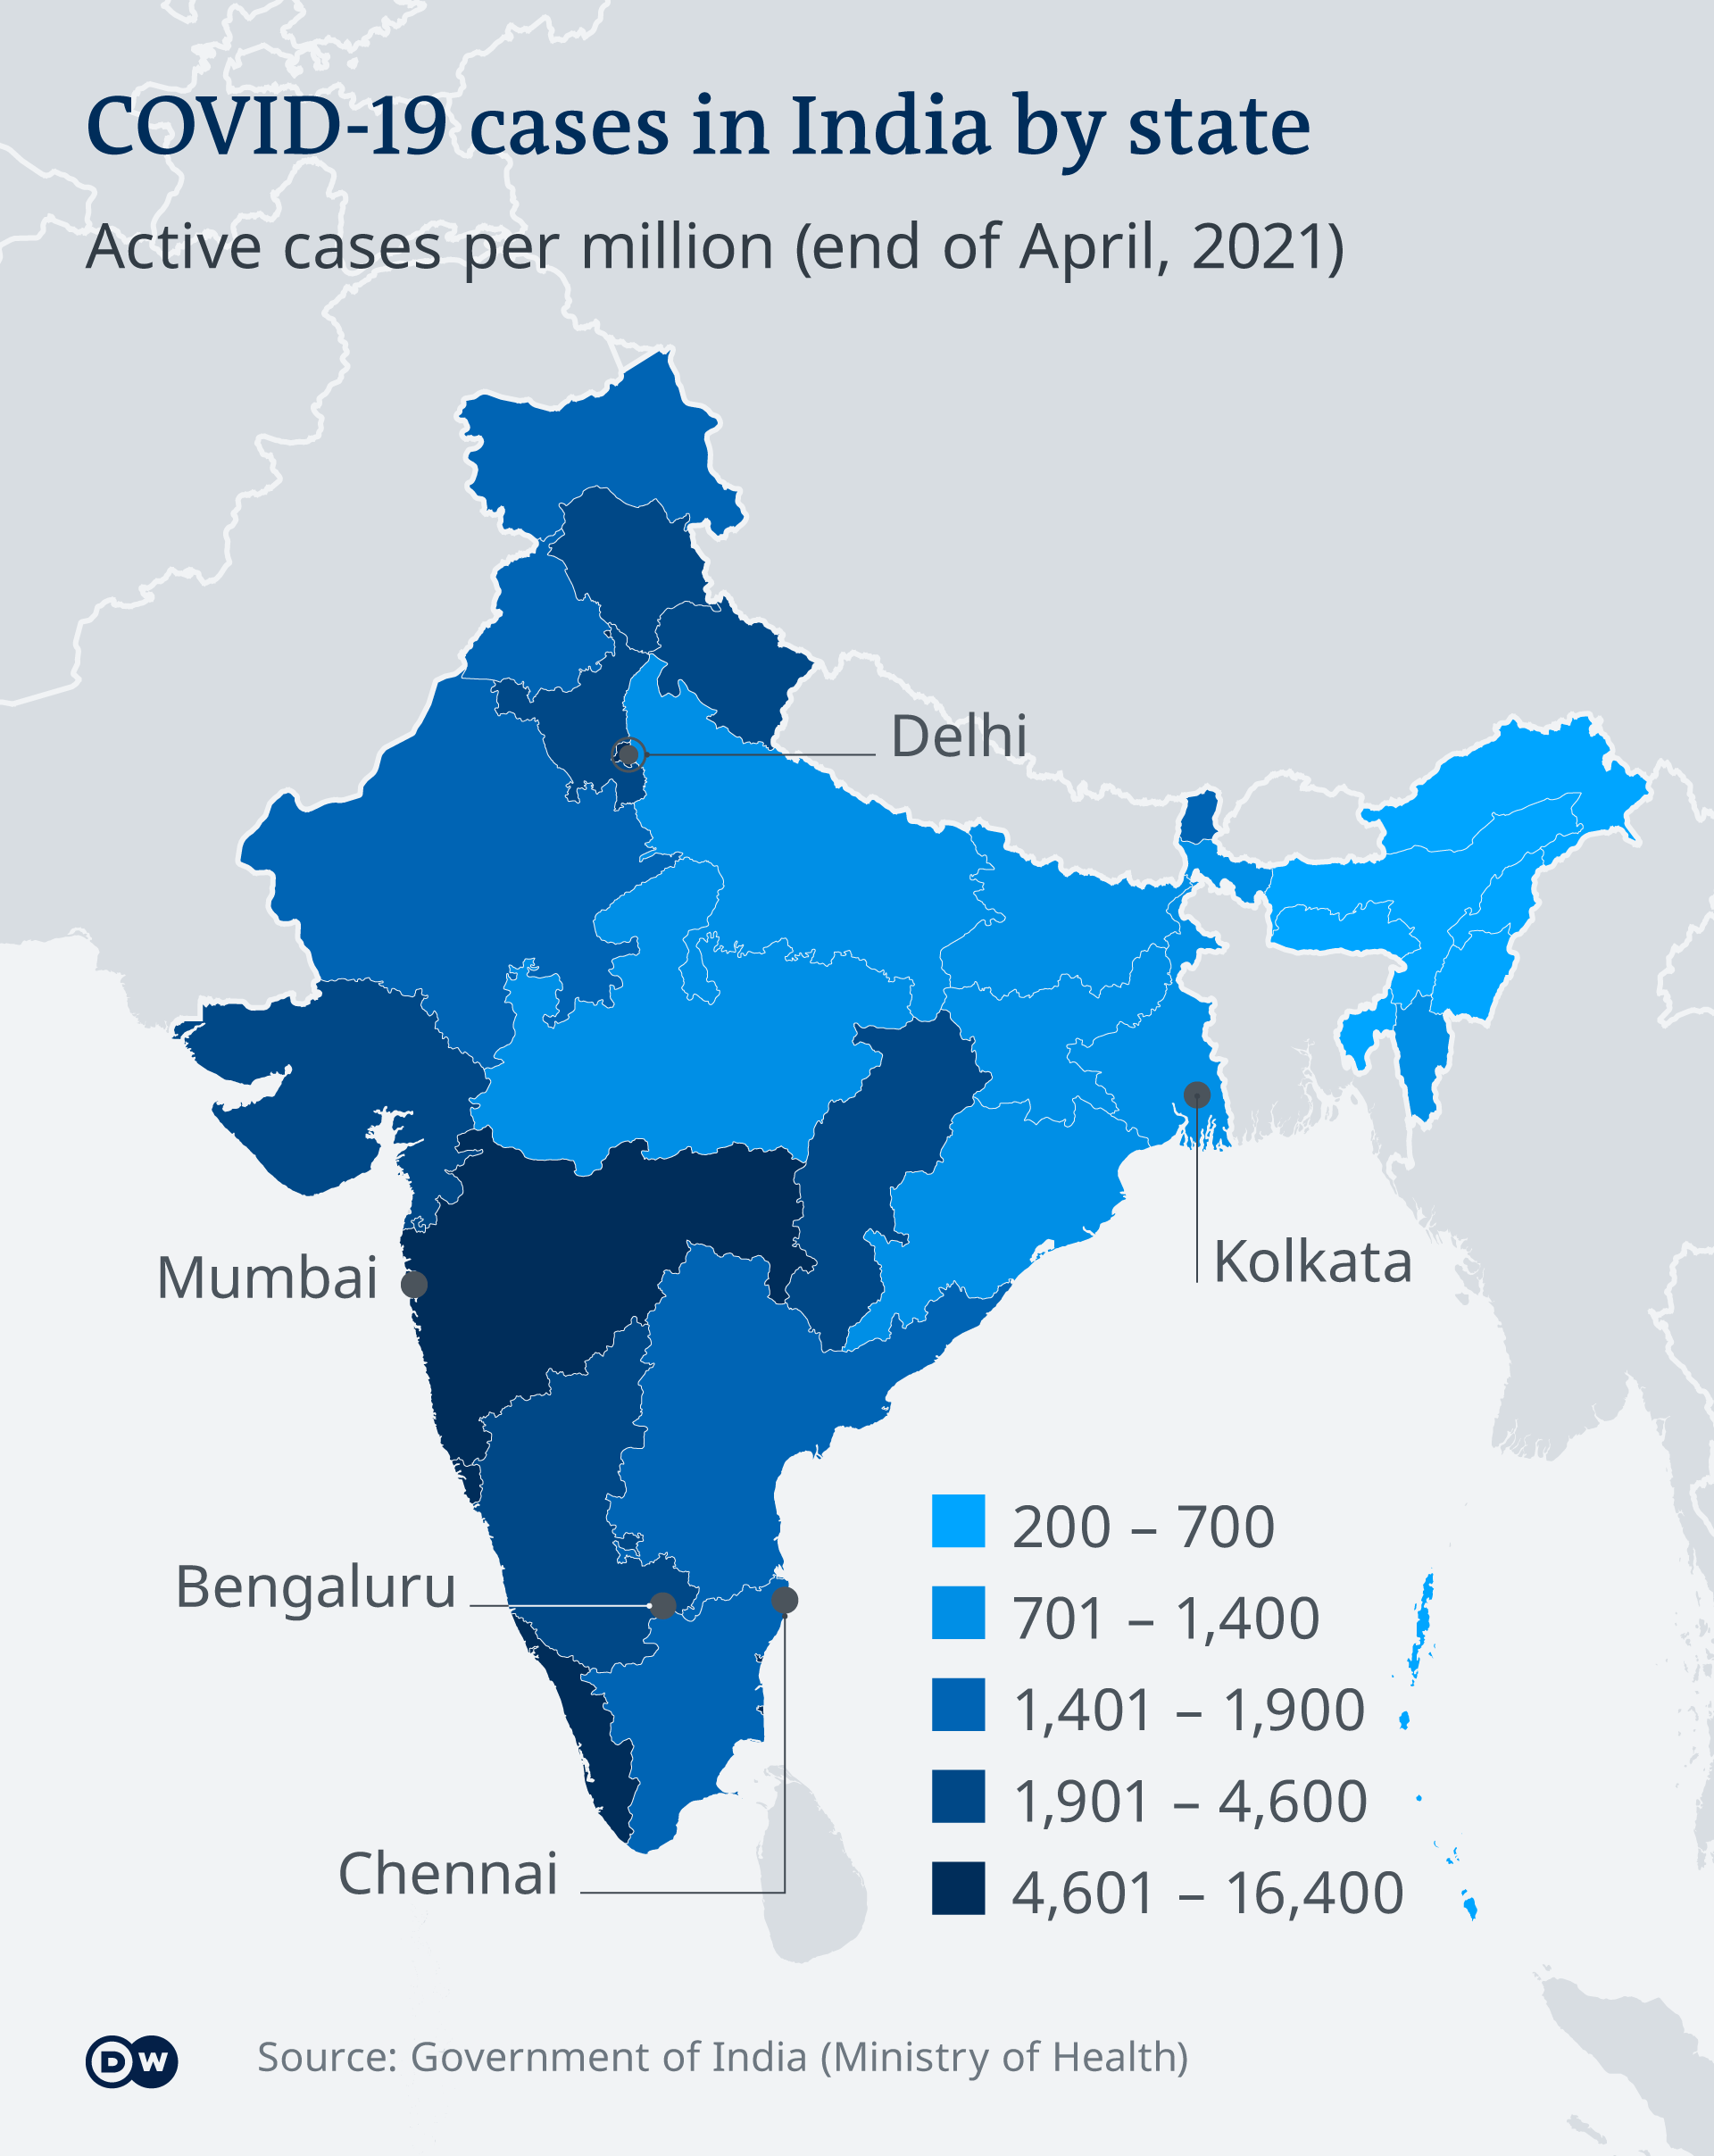 COVID cases in India by state